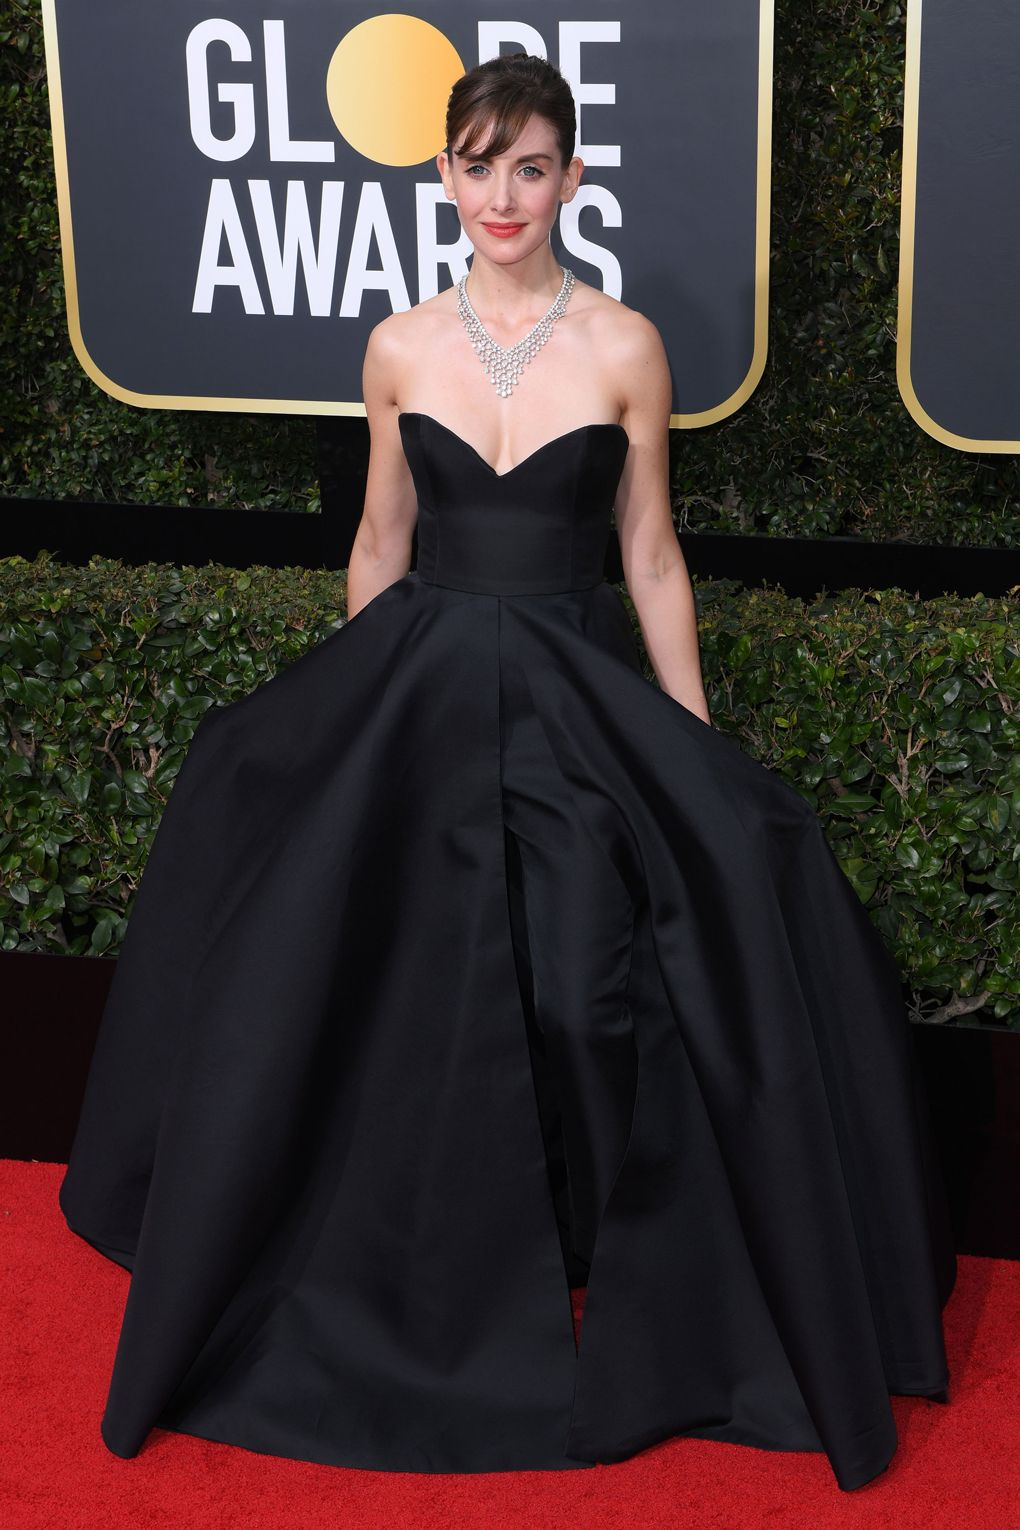 Red carpet dresses golden globes 2018 2019 part 2 b2b fashion - Golden globes red carpet ...